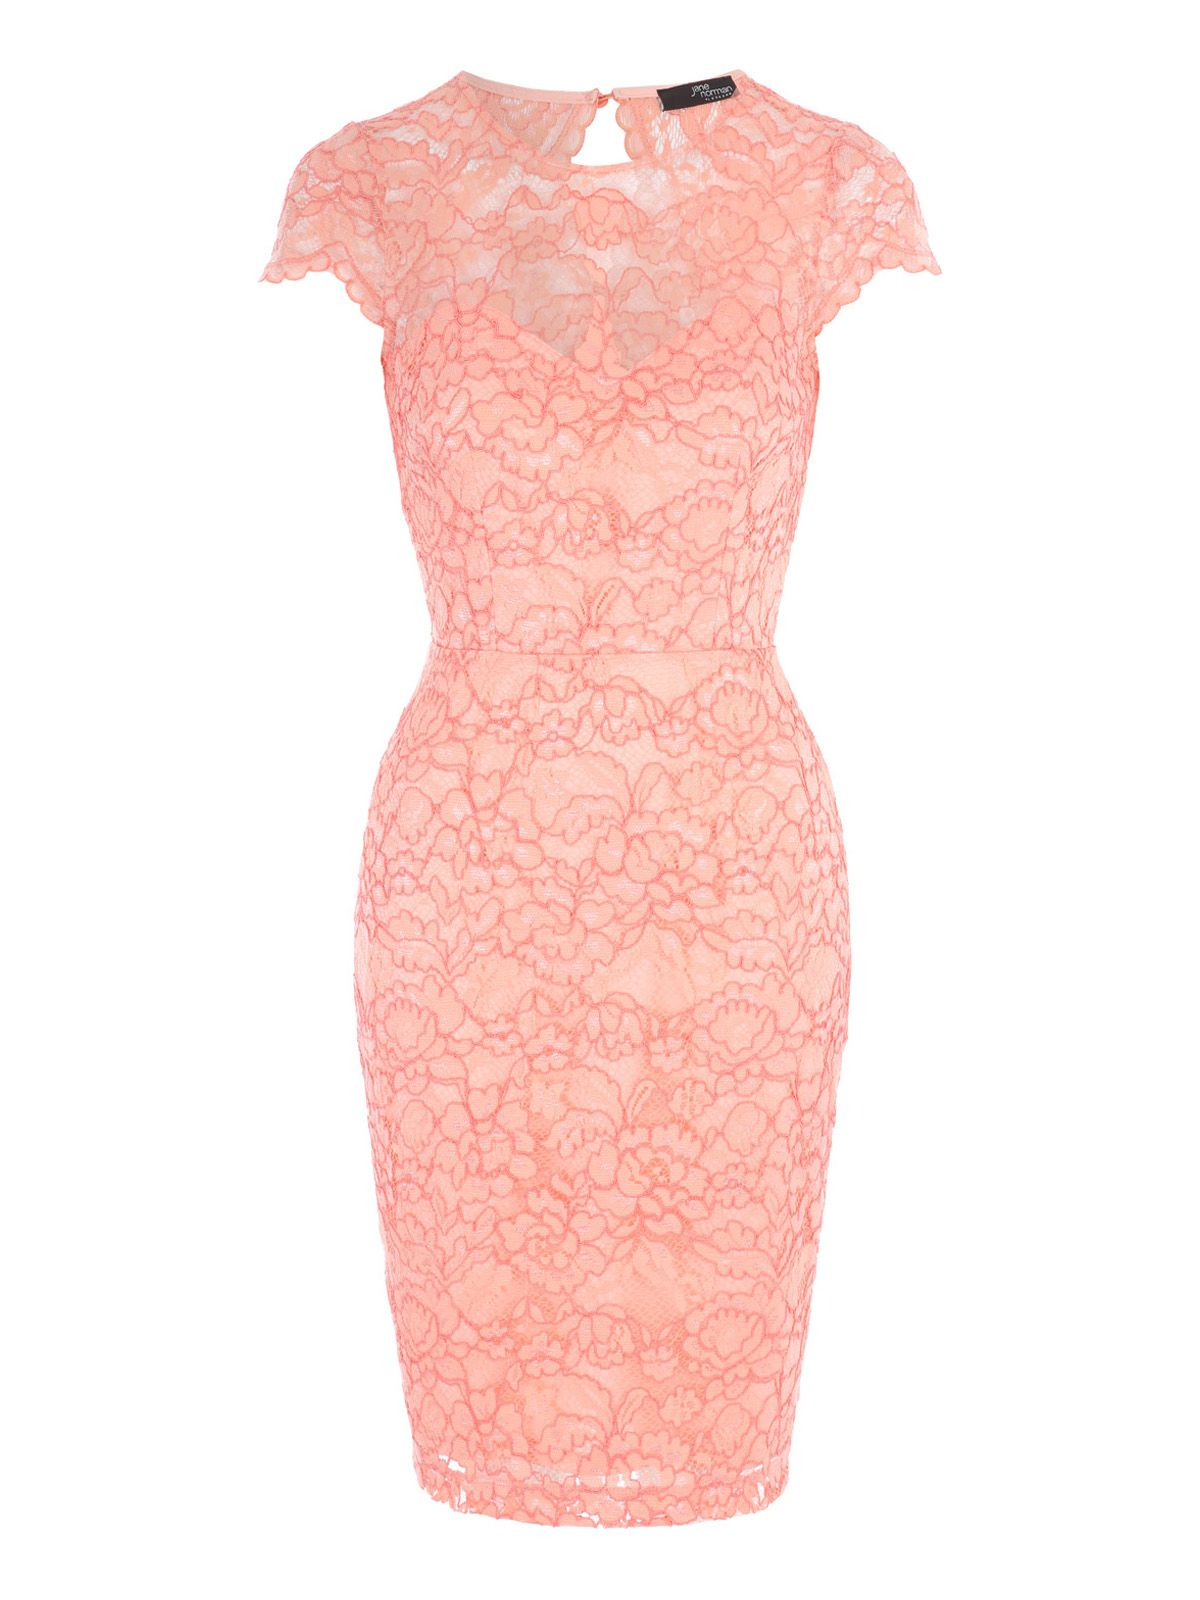 Jane Norman Scallop Lace Bodycon Dress, Coral